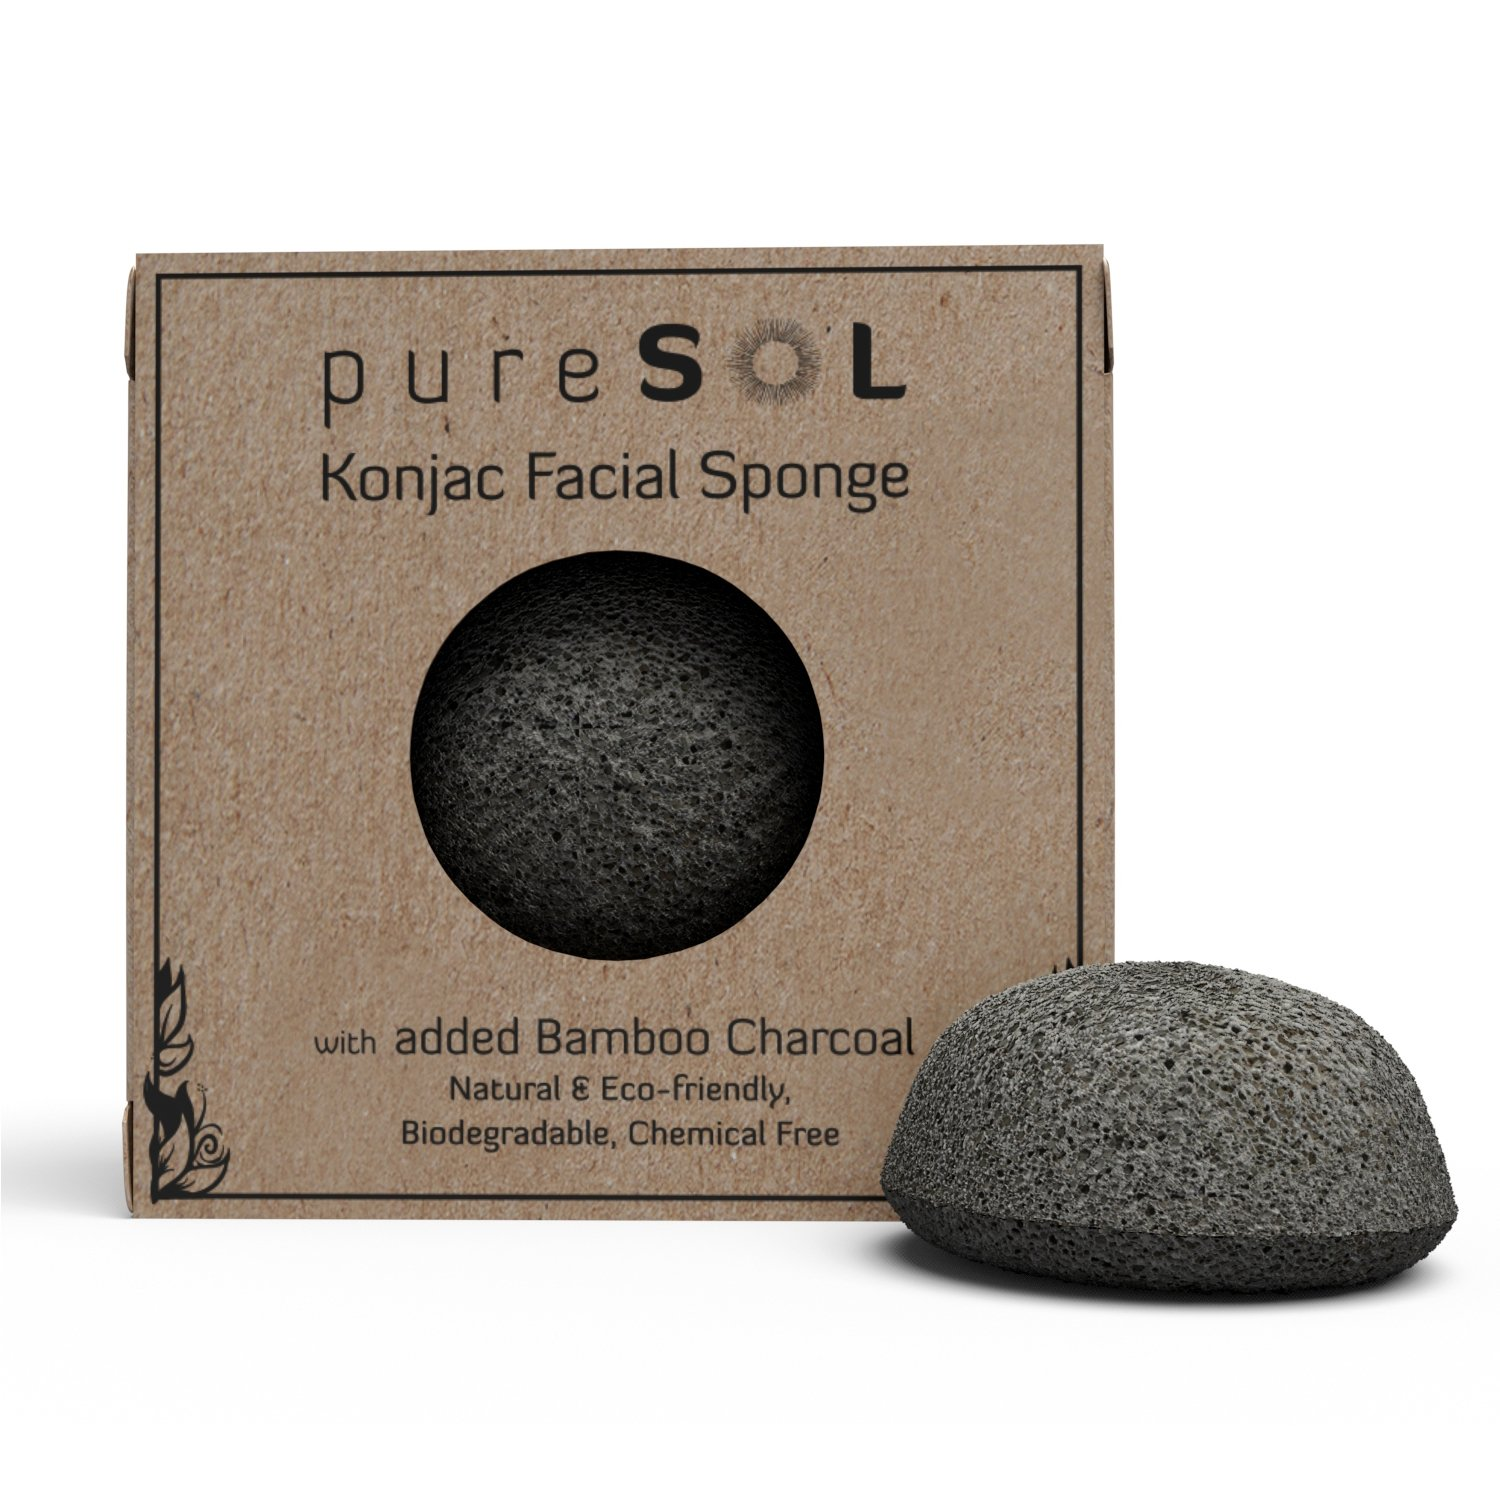 Konjac Facial Sponge - Activated Bamboo Charcoal